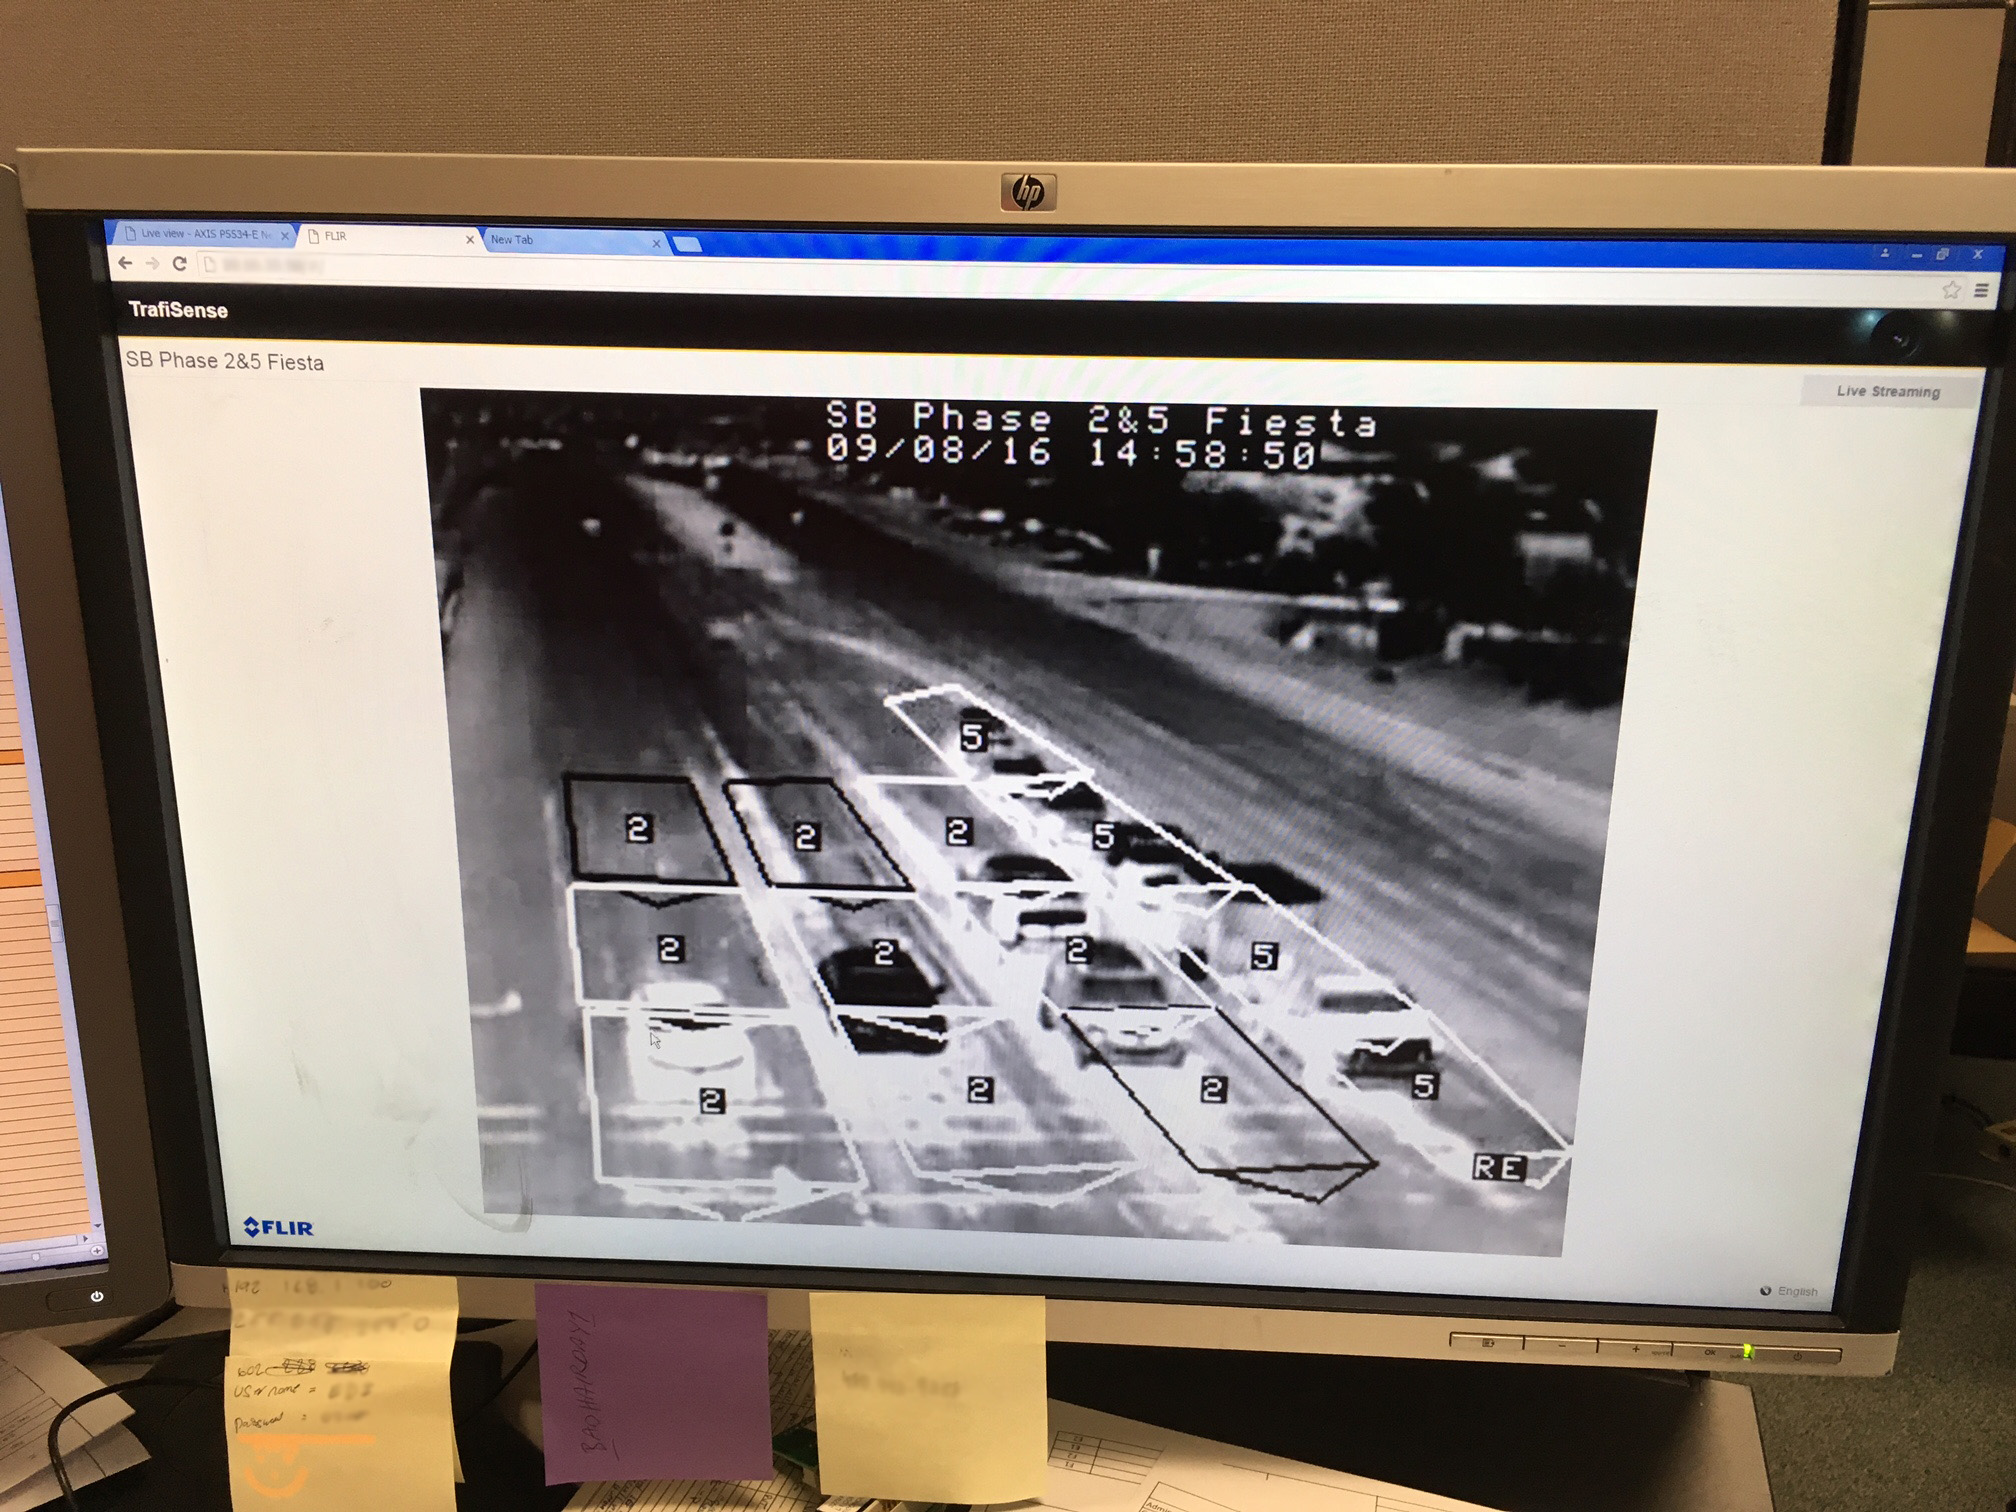 Monitor showing heat camera image of traffic